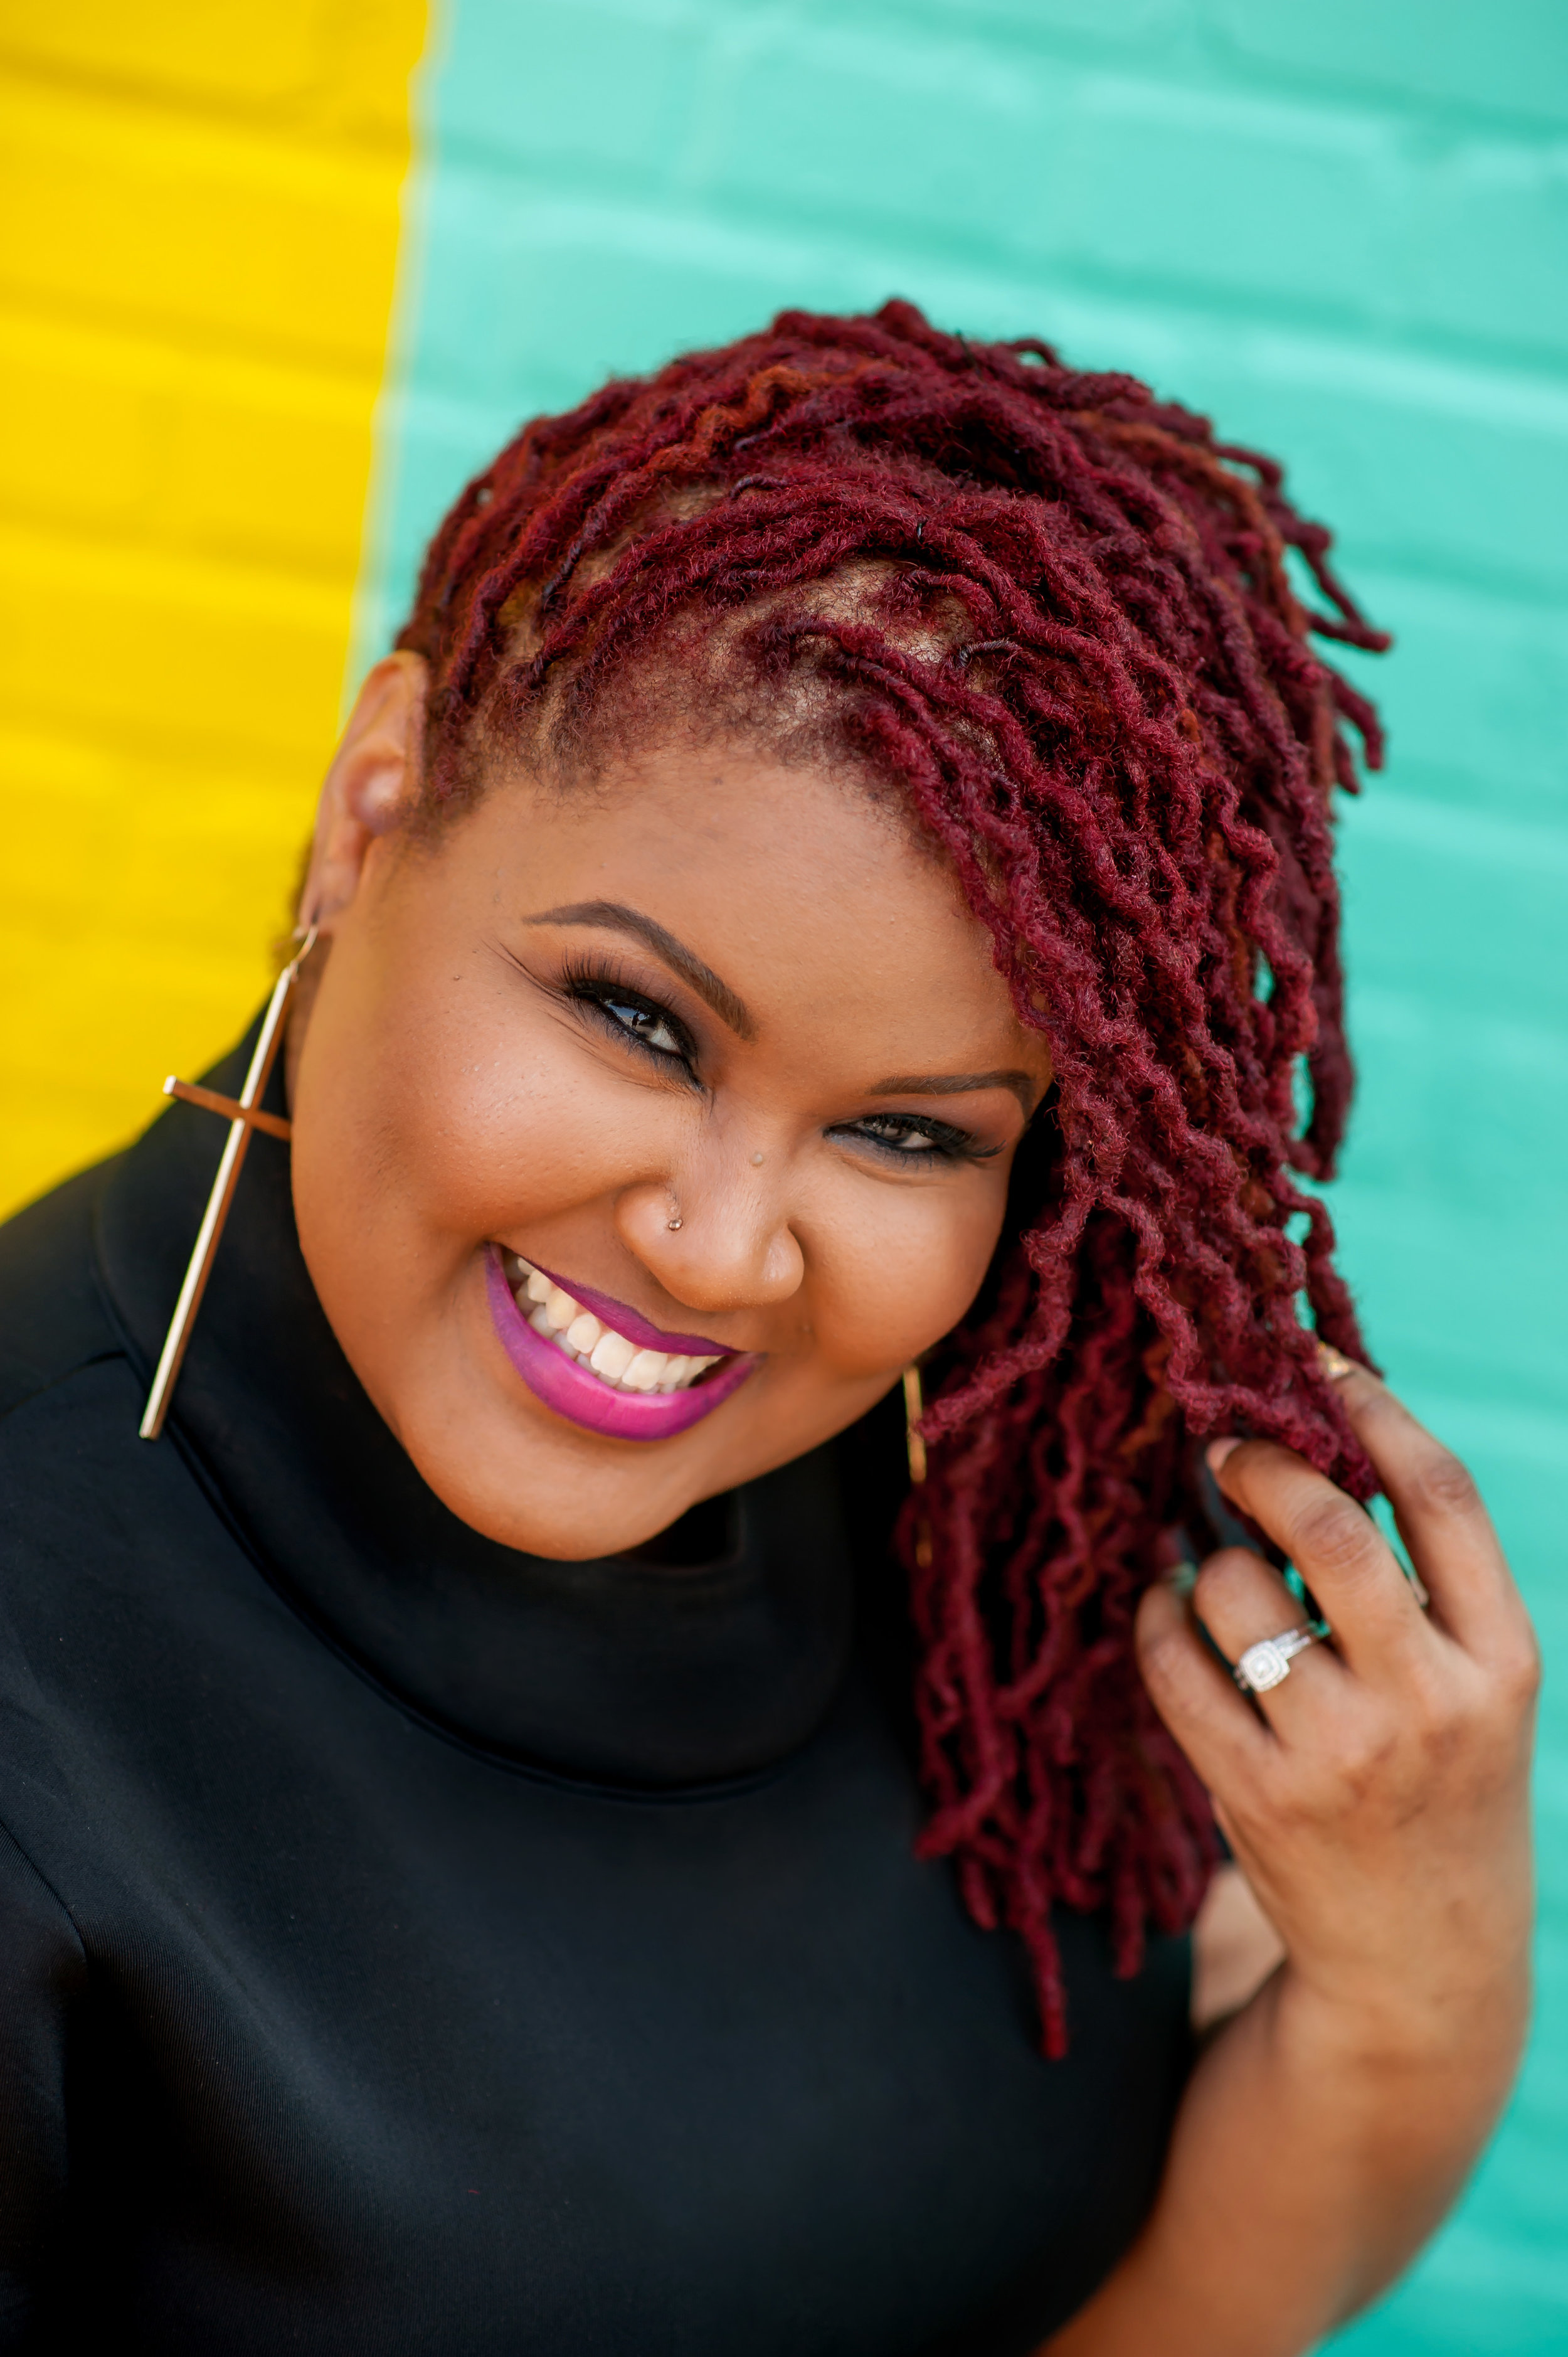 ABOUT LACRETIA - LaCretia is the Owner and Master Loctician of Nappturally U proudly serving the Washington D.C. Metropolitan area for over 15 years, however her customer base extends all over the U.S.. High quality standards and a tireless work ethic has made her one of the top Locticians in the natural hair care industry. LaCretia continues to perfect her craft assuring customers will receive the consistent quality service they deserve.You will enjoy the one on one attention you receive when getting your loc services done at Nappturallly U where the focus is on quality, not quantity.We look forward to you becoming part of the Nappturally U family!~ Natural is Beautiful.